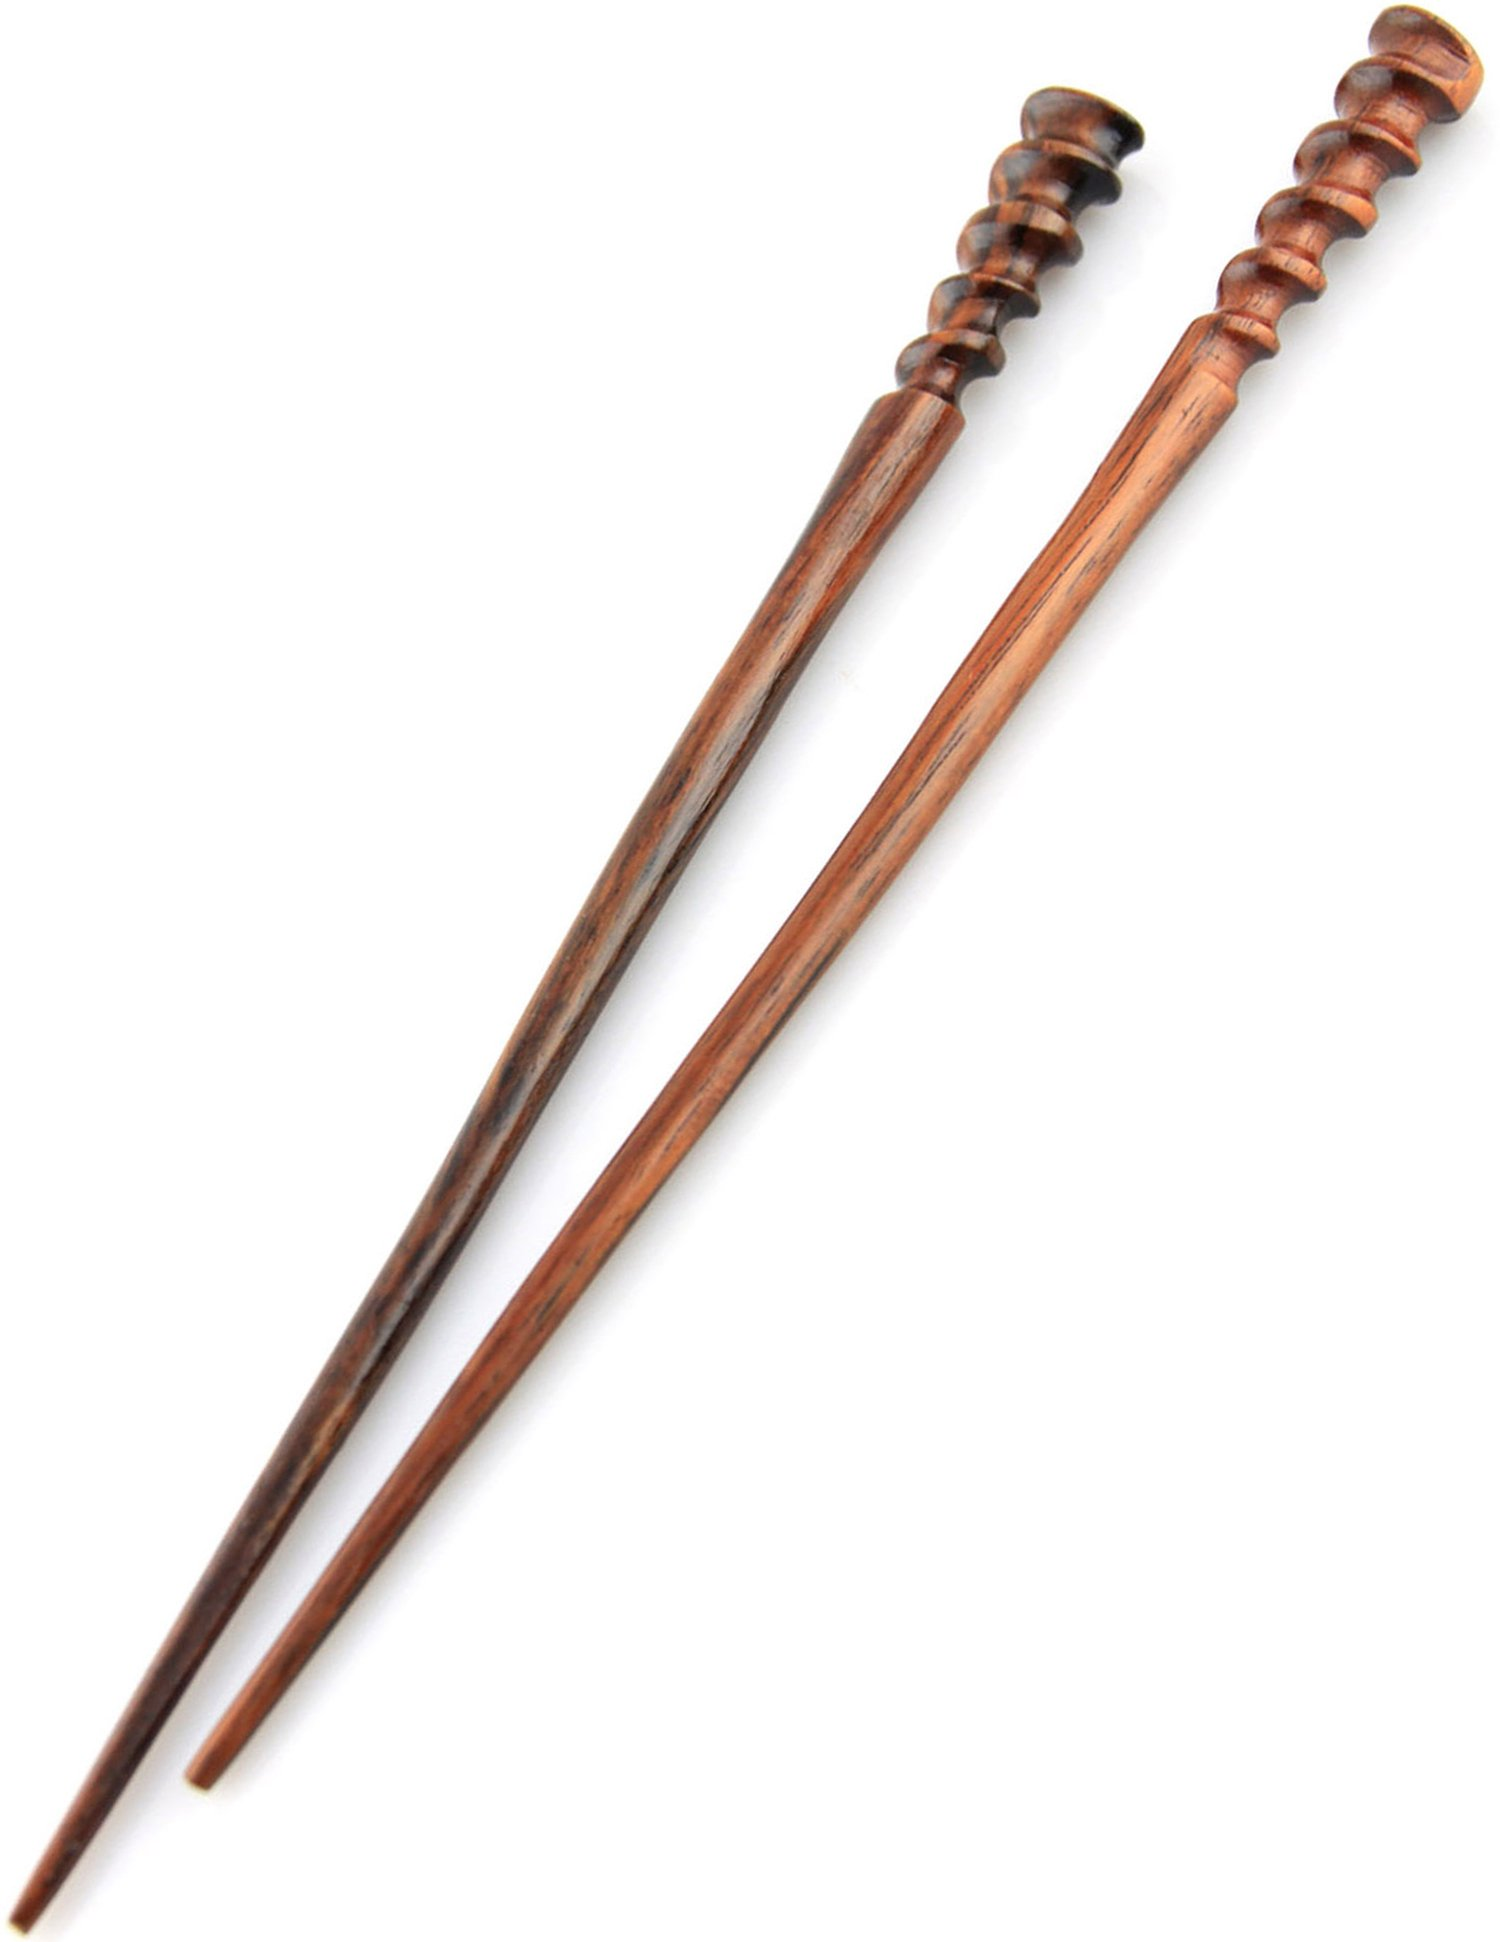 Natural Hair Pin Chopsticks - Pair of Spiral Hair Sticks for Women and Men - Hand Carved Wood Styling Pin Set - Fine Cut Spiral - 7.5 Inches Long